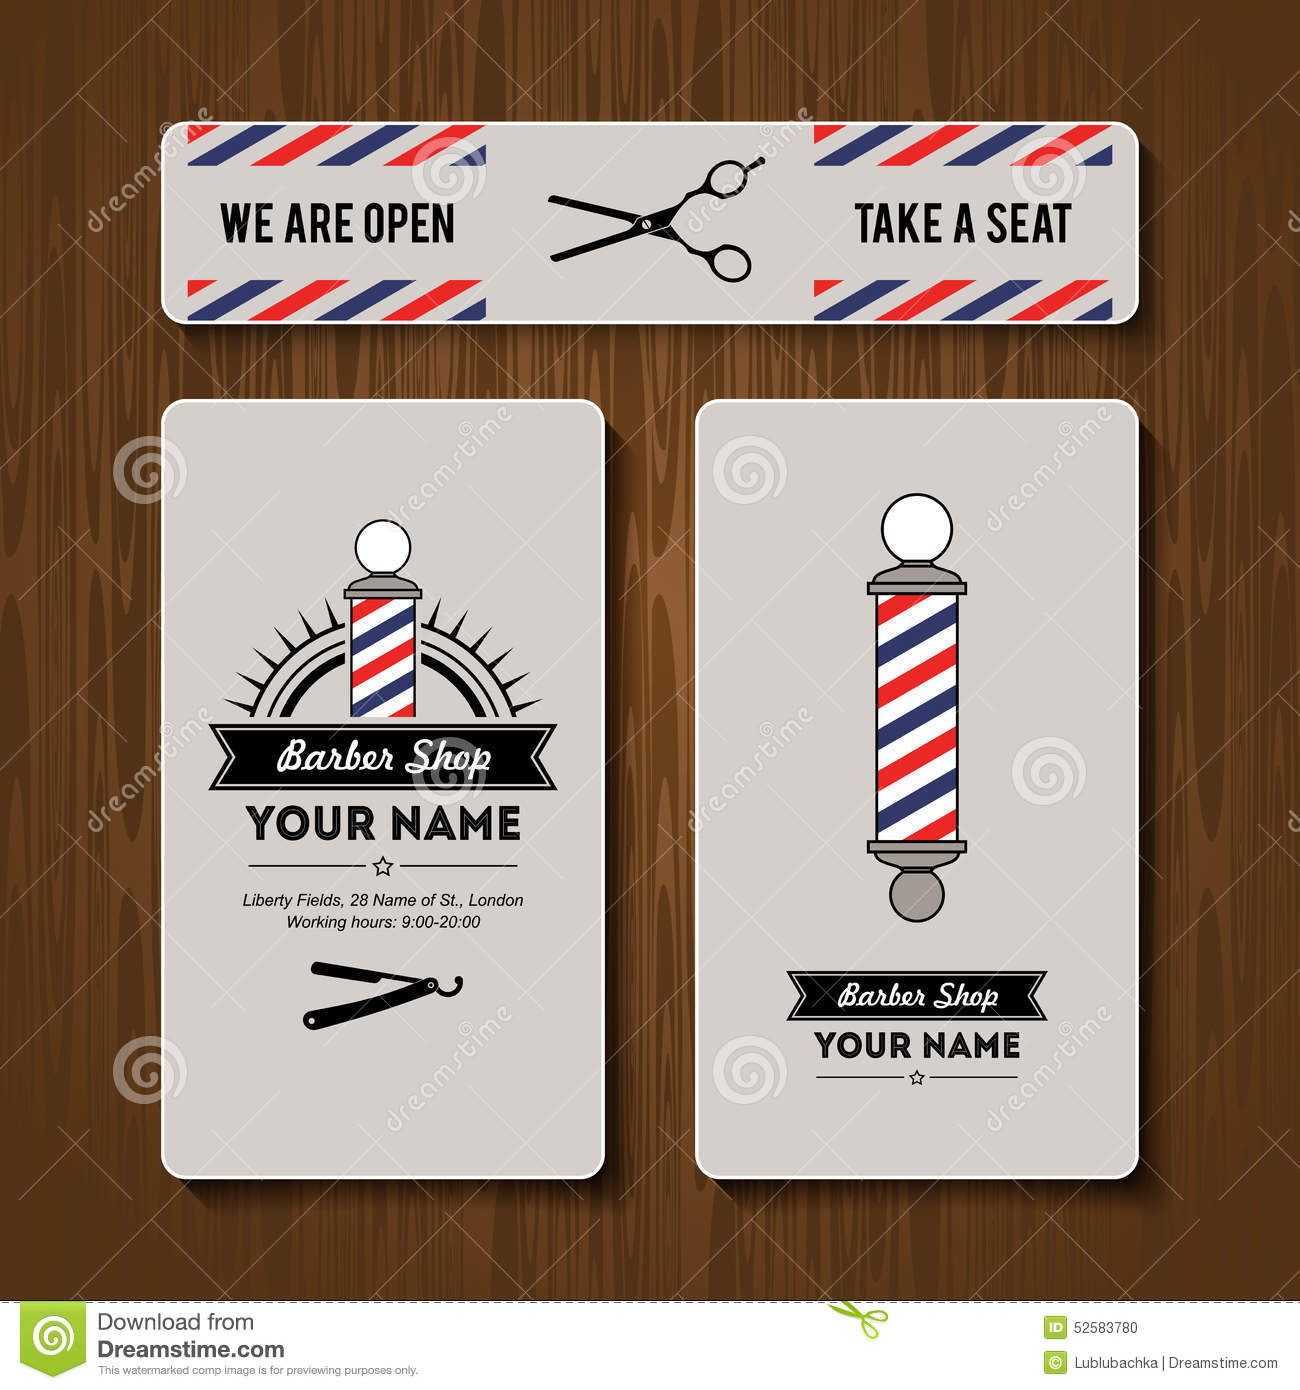 Hair salon barber shop business card design template set stock download hair salon barber shop business card design template set stock illustration illustration of gents fbccfo Gallery